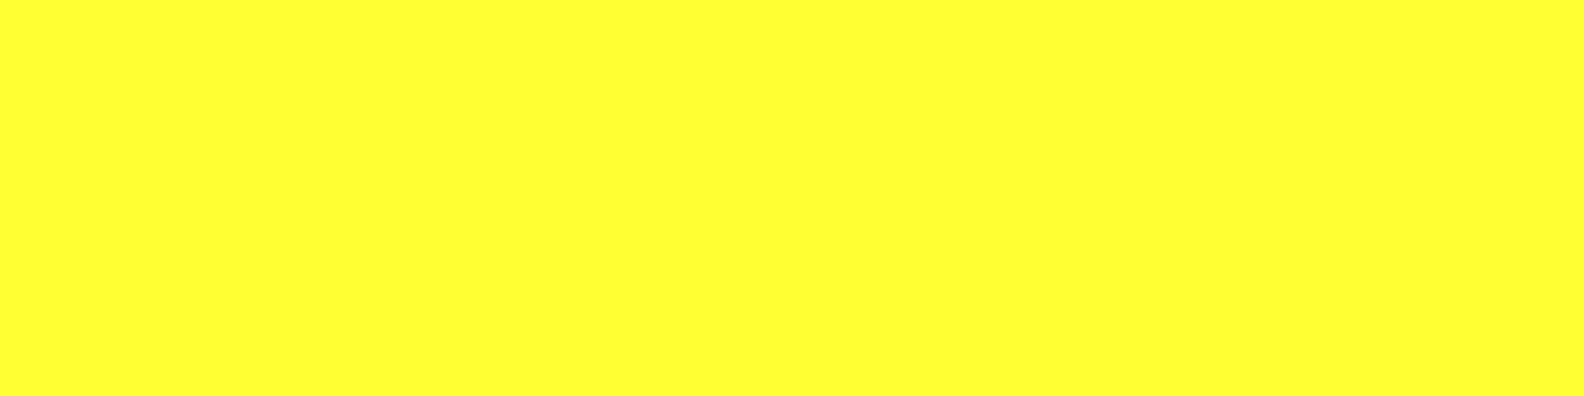 1584x396 Yellow RYB Solid Color Background